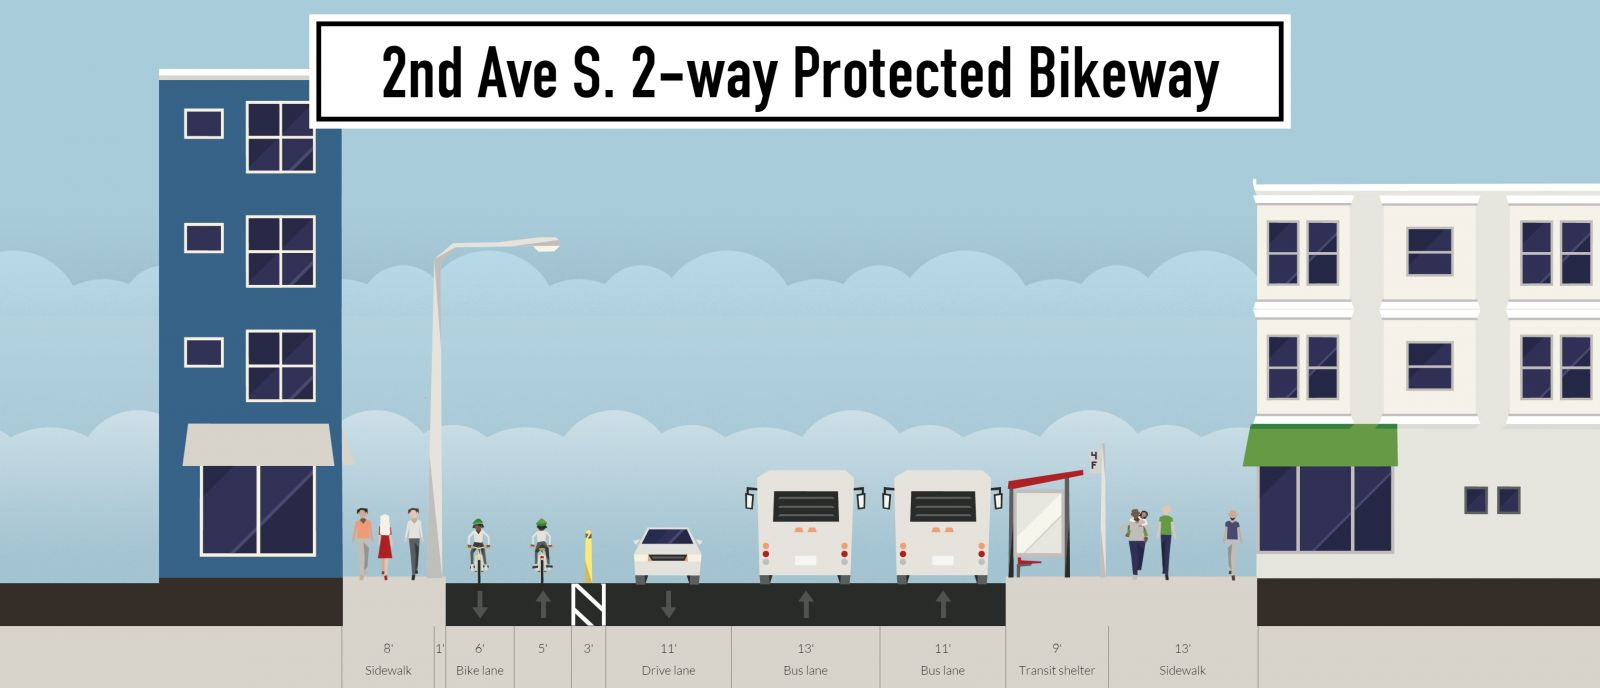 2nd-ave-s-2-way-protected-bikeway_Streetmix.jpg